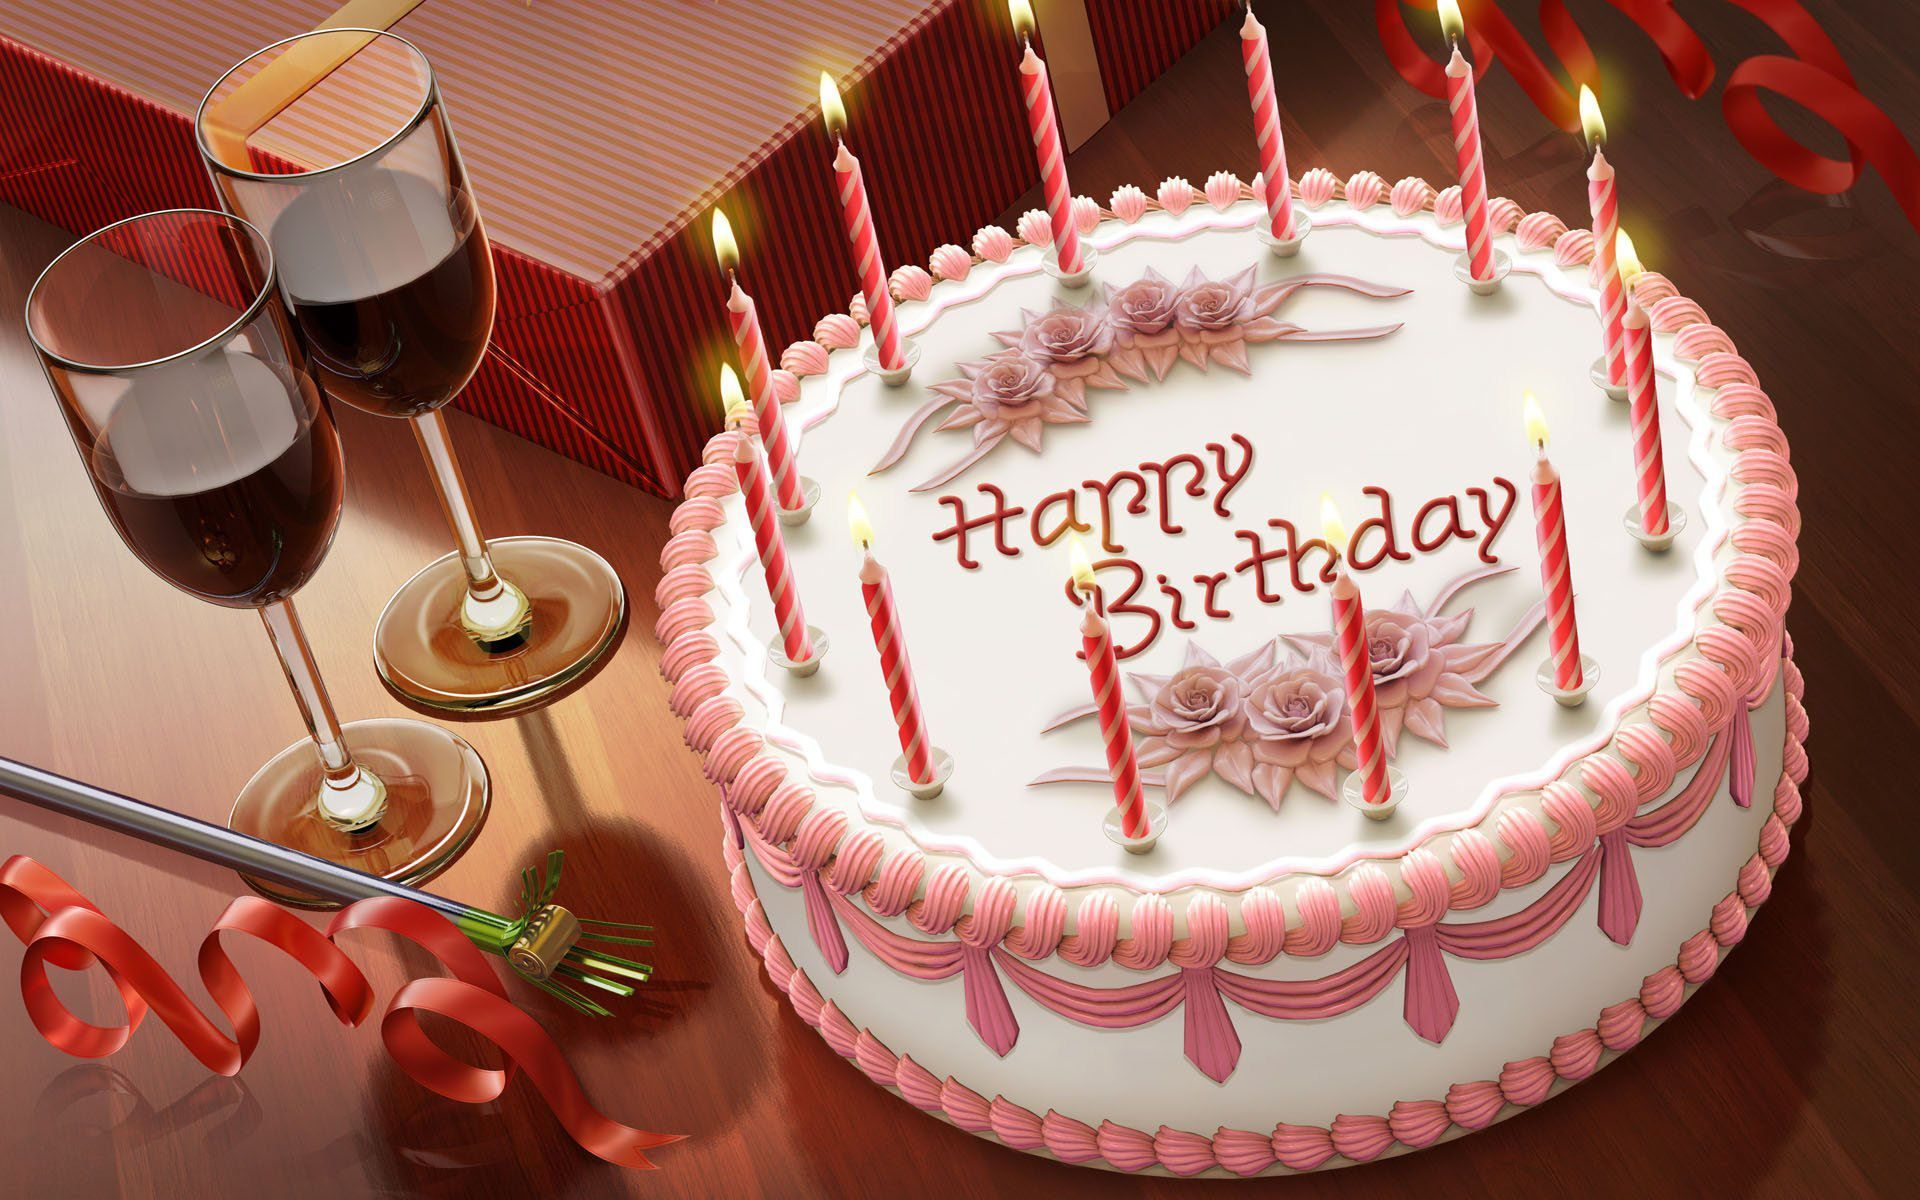 Happy Birthday Carla Yourpshome Net